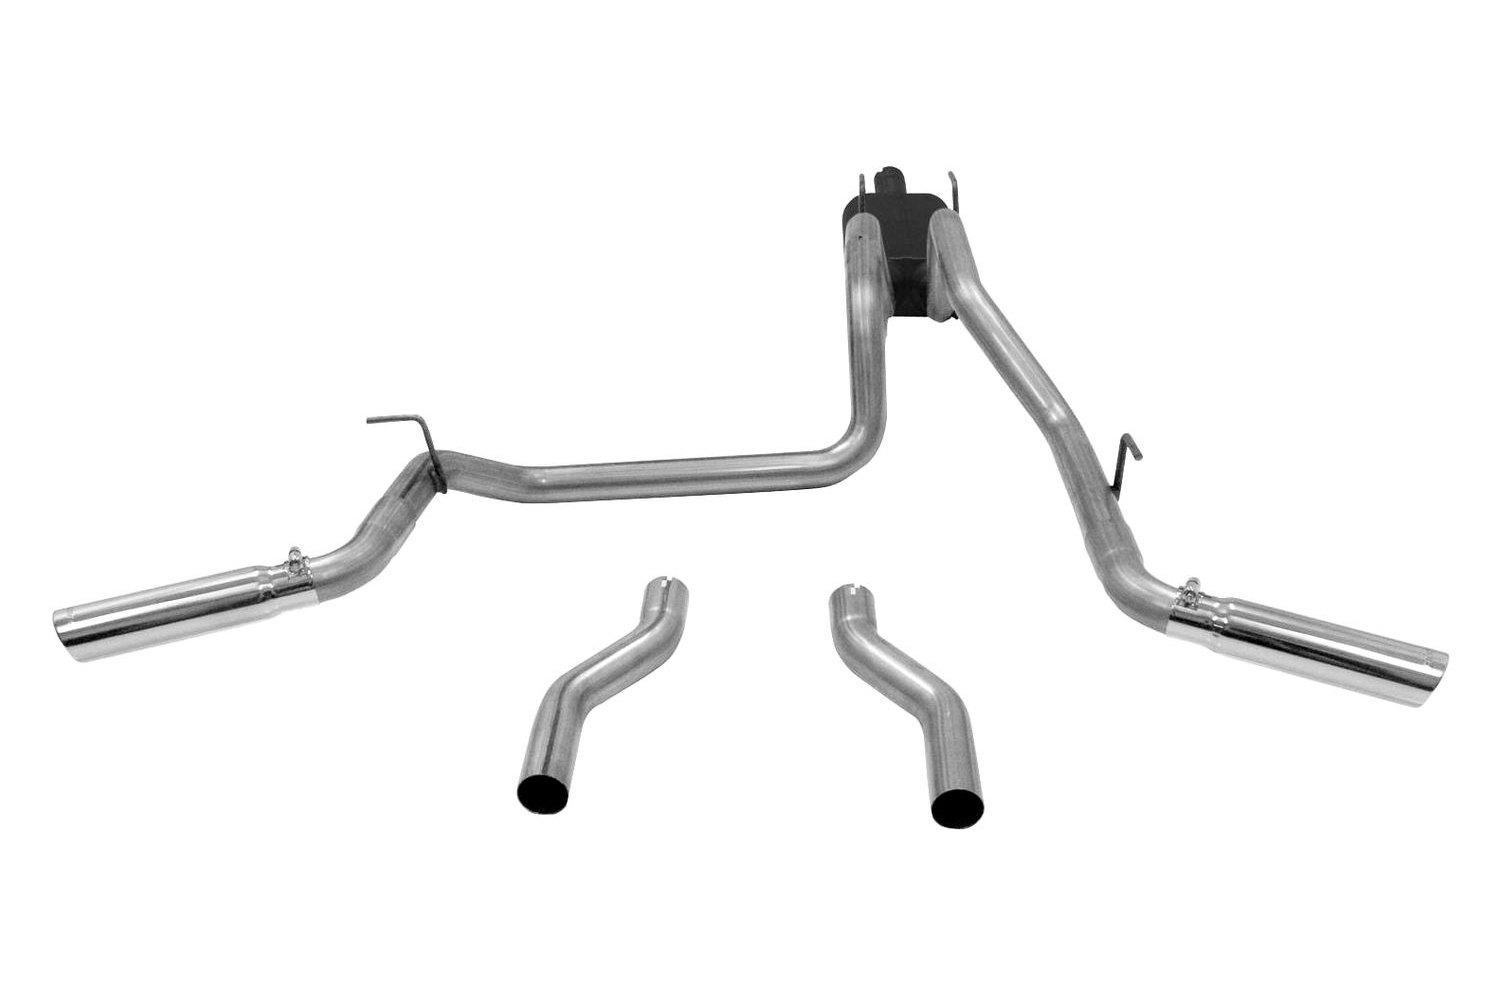 Dodge Ram Exhaust Performance Exhaust Systems Dual Exhausts